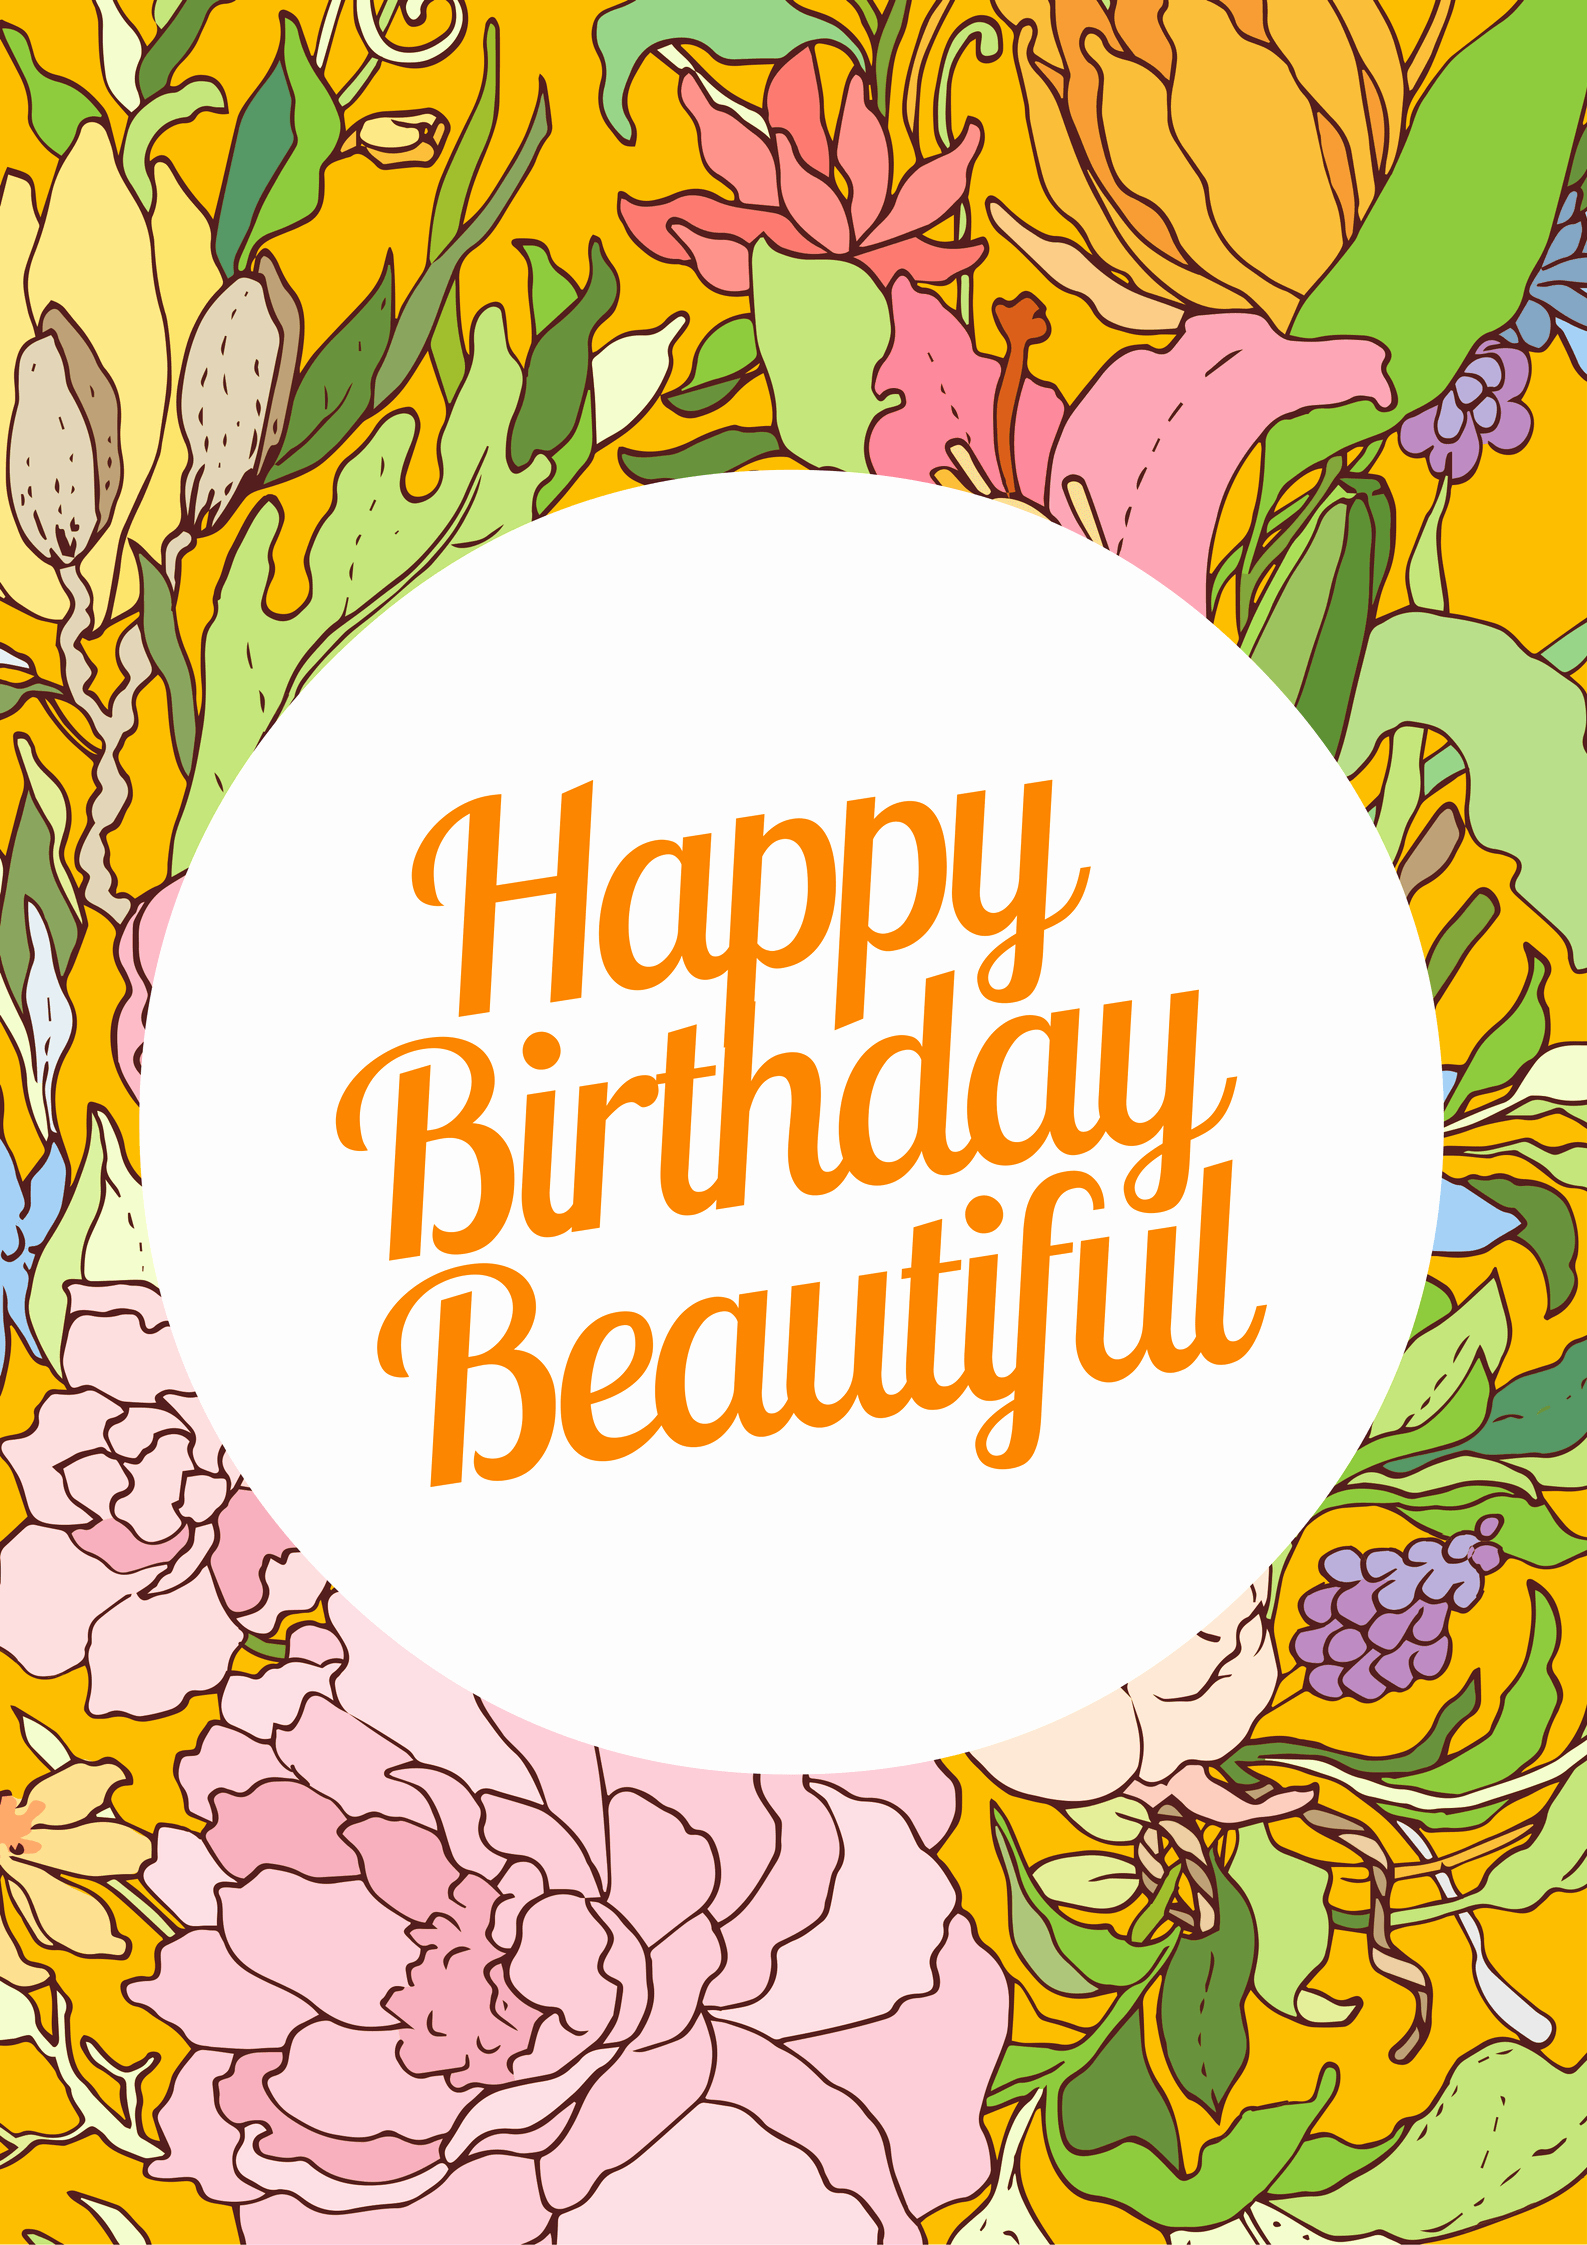 Happy Birthday to Me Poster Awesome Ante Up Your Marketing Game with A Sales Driving Big Color